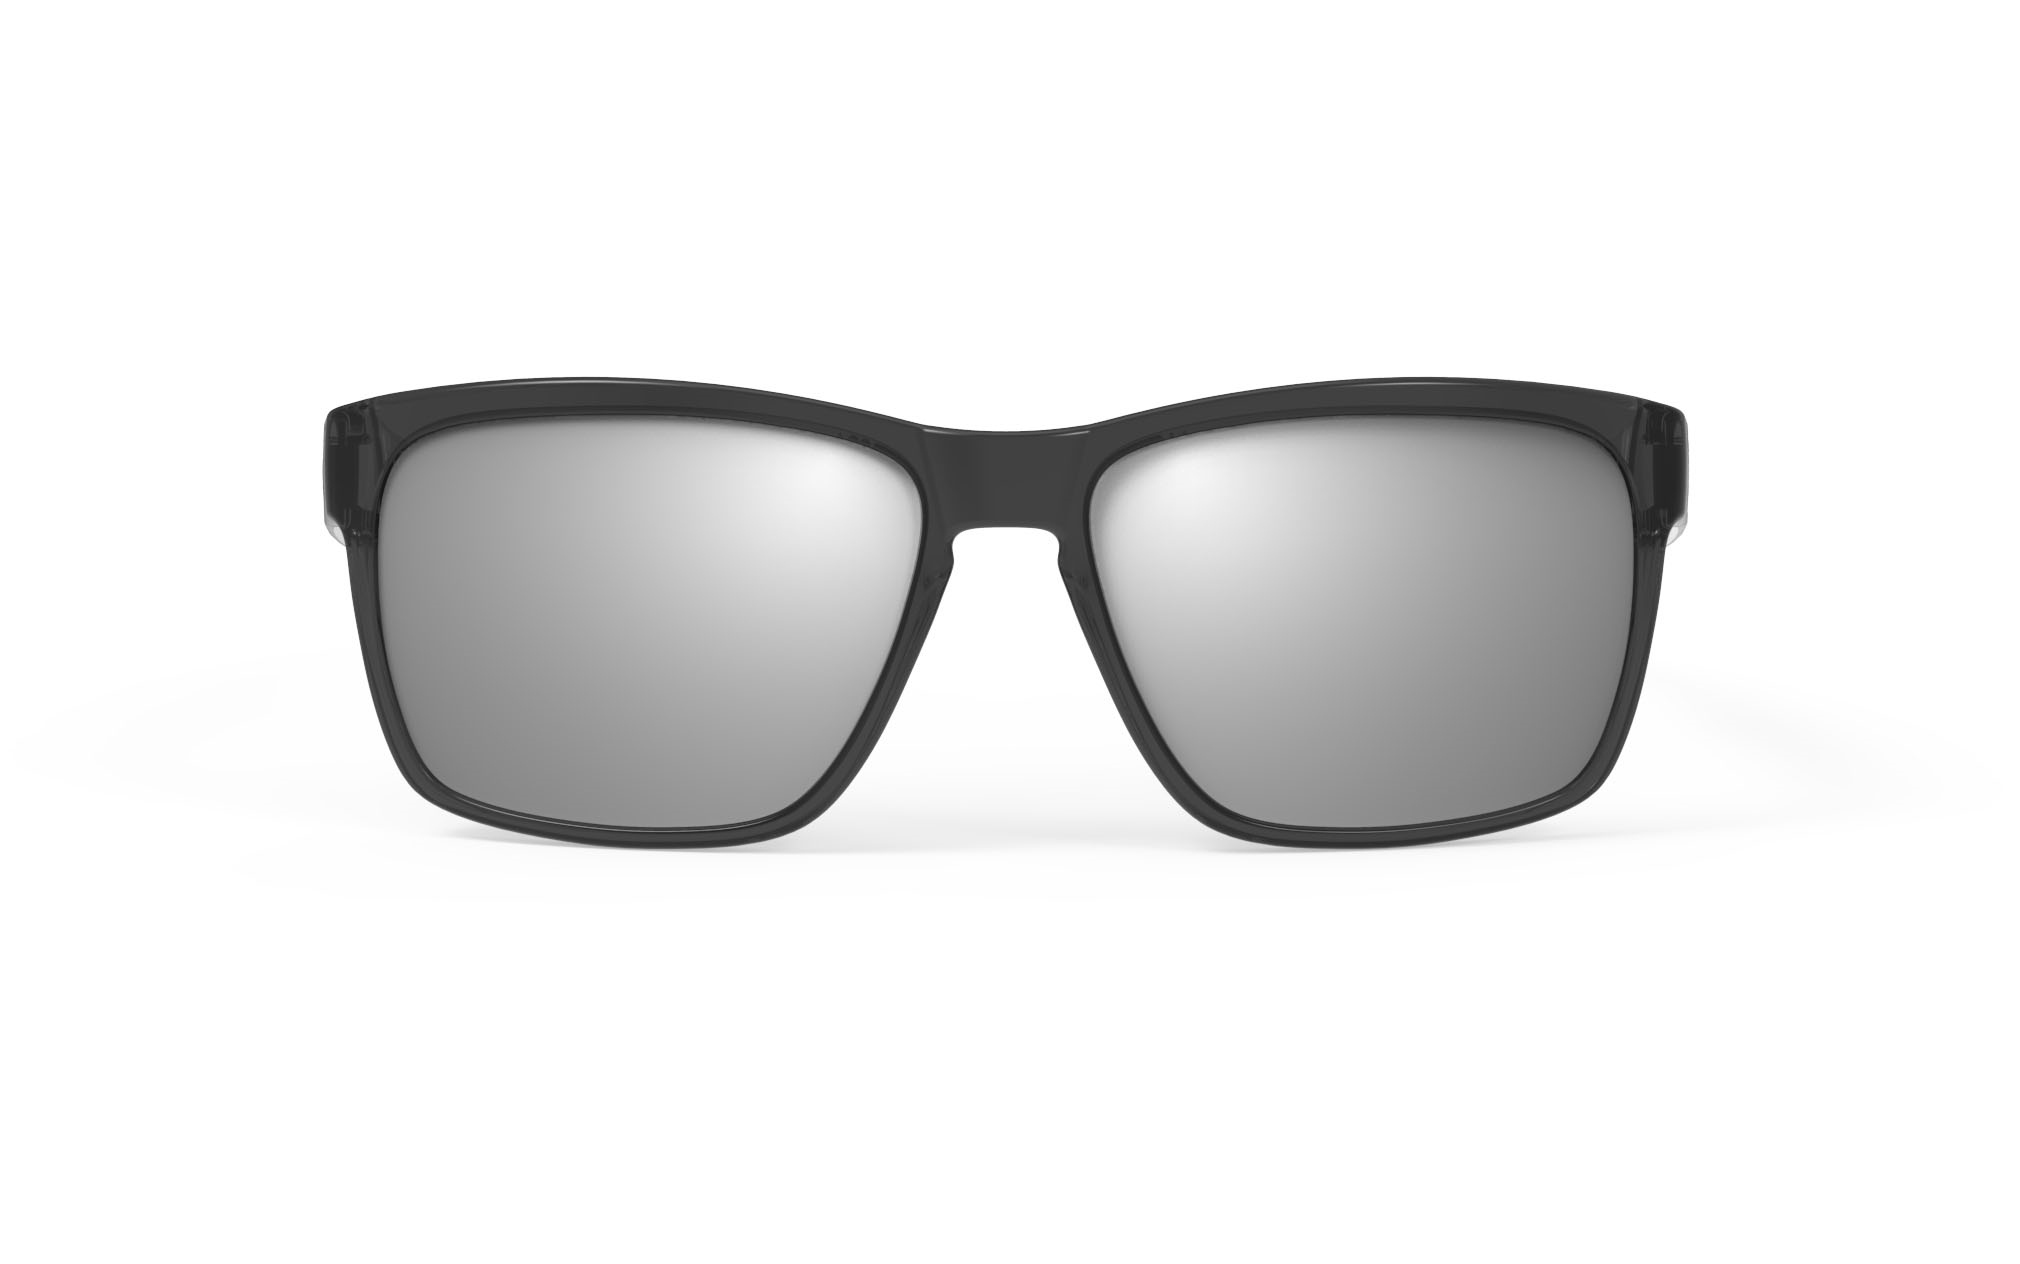 bfb1a6e5e Active Lifestyle Eyewear Spinhawk Loud - Rudy Project